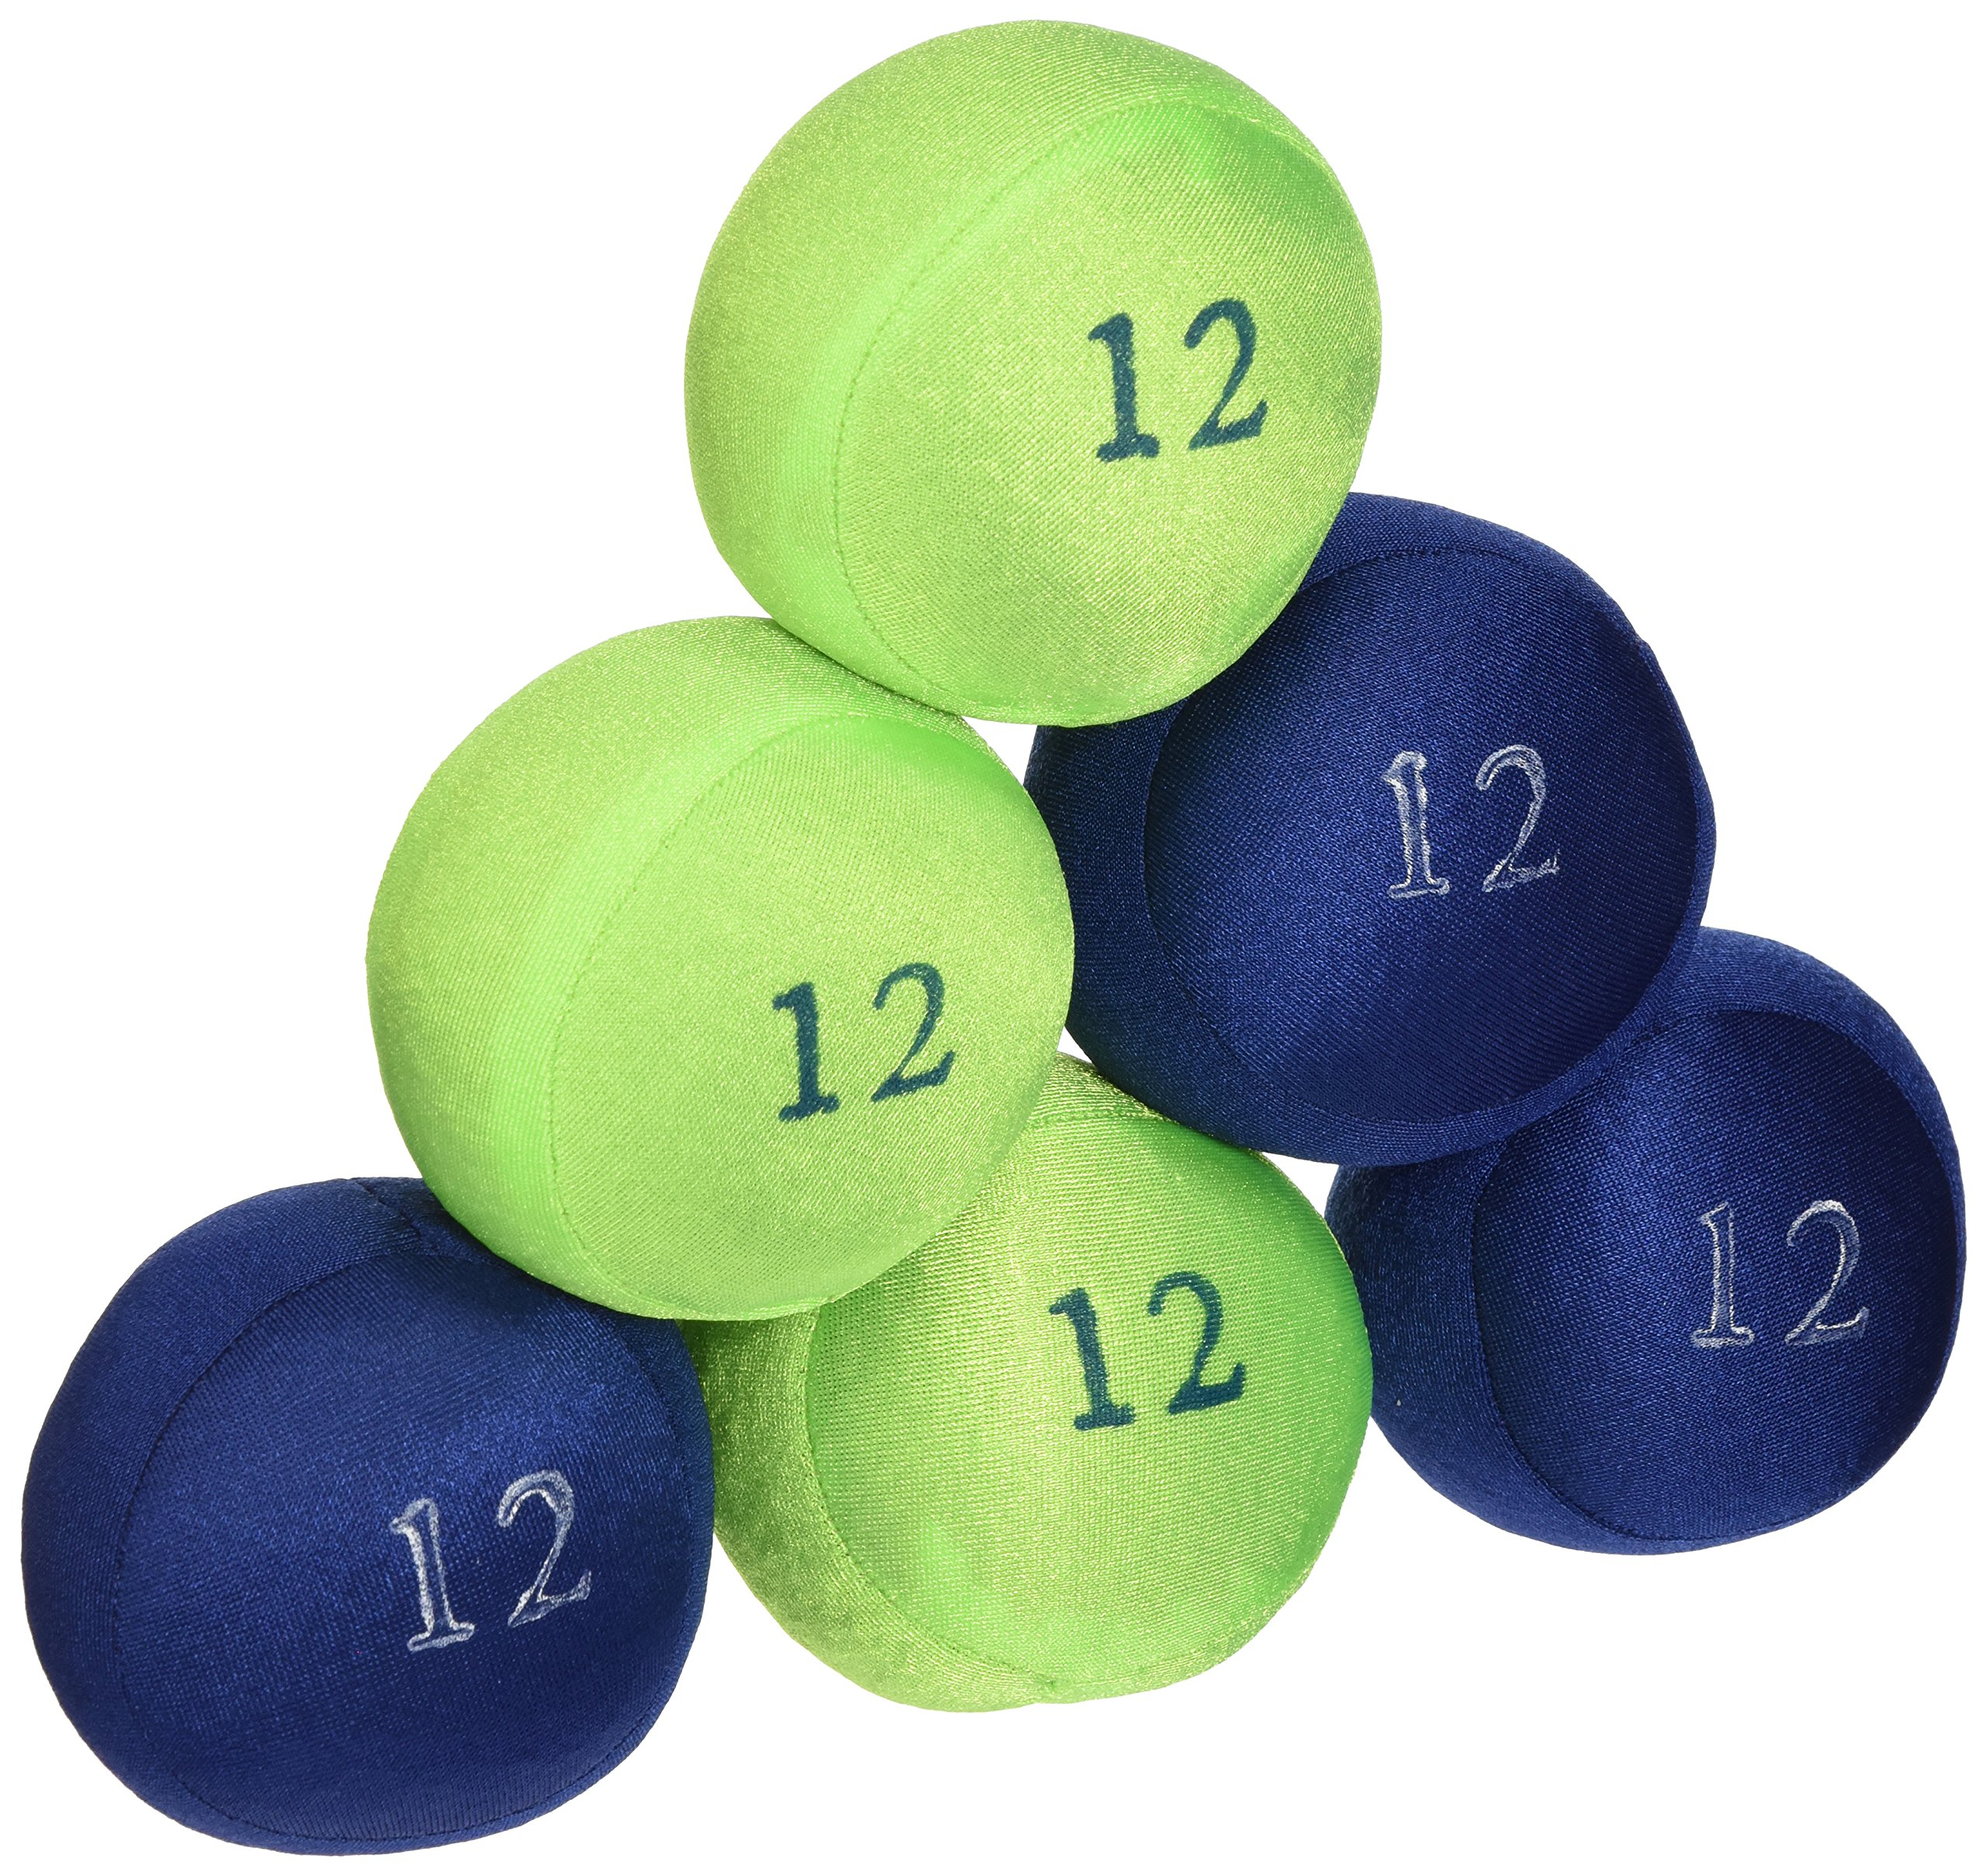 Lavender Luvies Lavender Stress Balls, Seahawks 12th Man - 6 Pack by Lavender Luvies